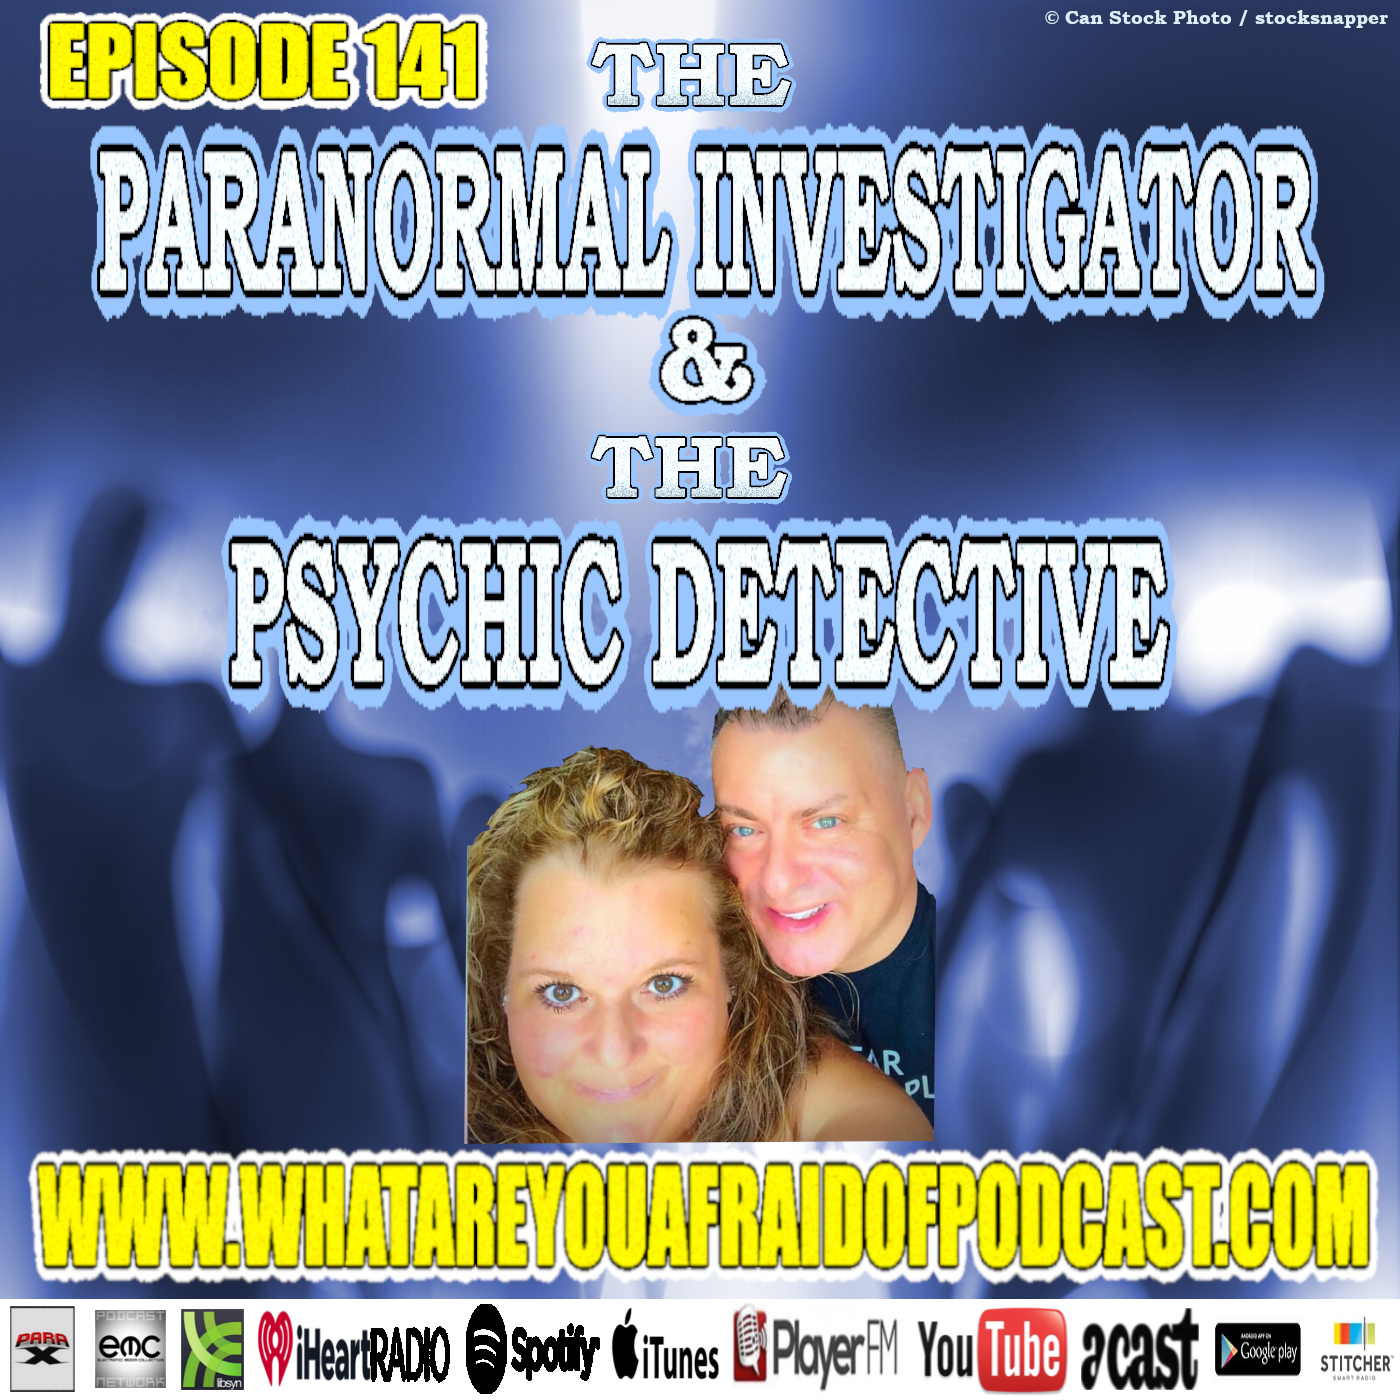 141 - THE PARANORMAL INVESTIGATOR & PSYCHIC DETECTIVE